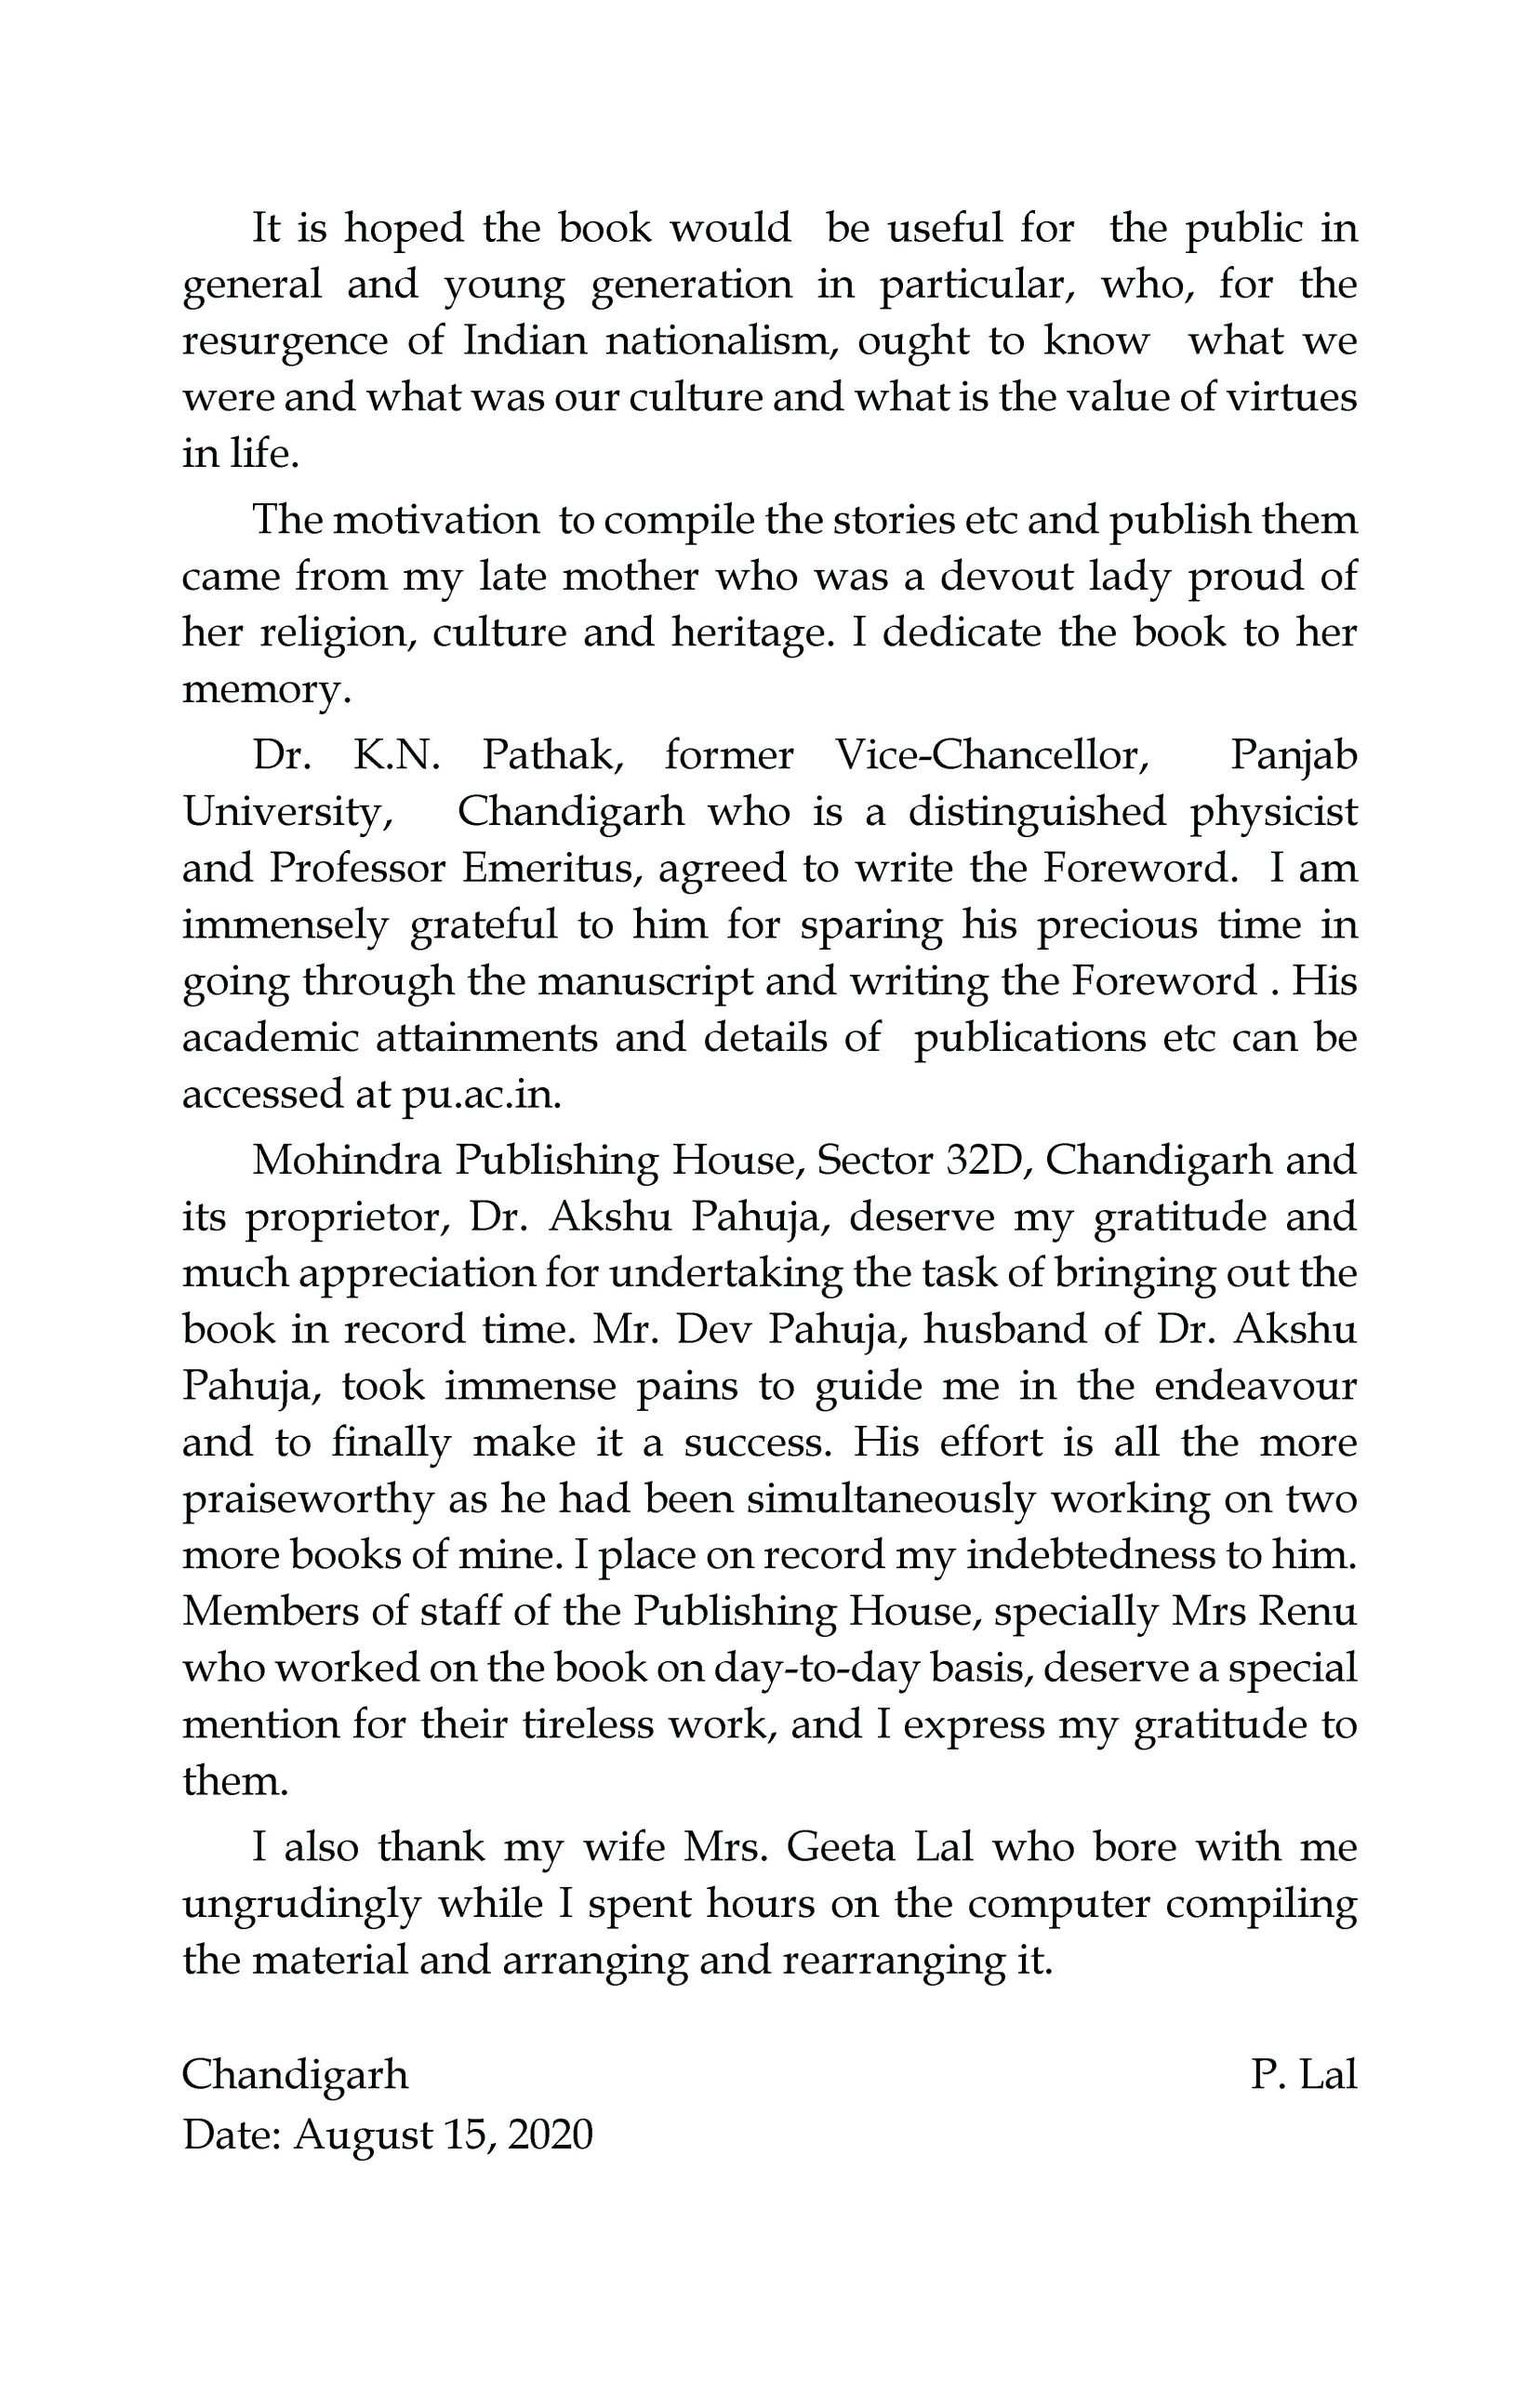 Let's Laugh & Laugh HaHaHa (Book of jokes) – culled and compiled by P. Lal (Author), Dr. S. S. Bhatti (Foreword)